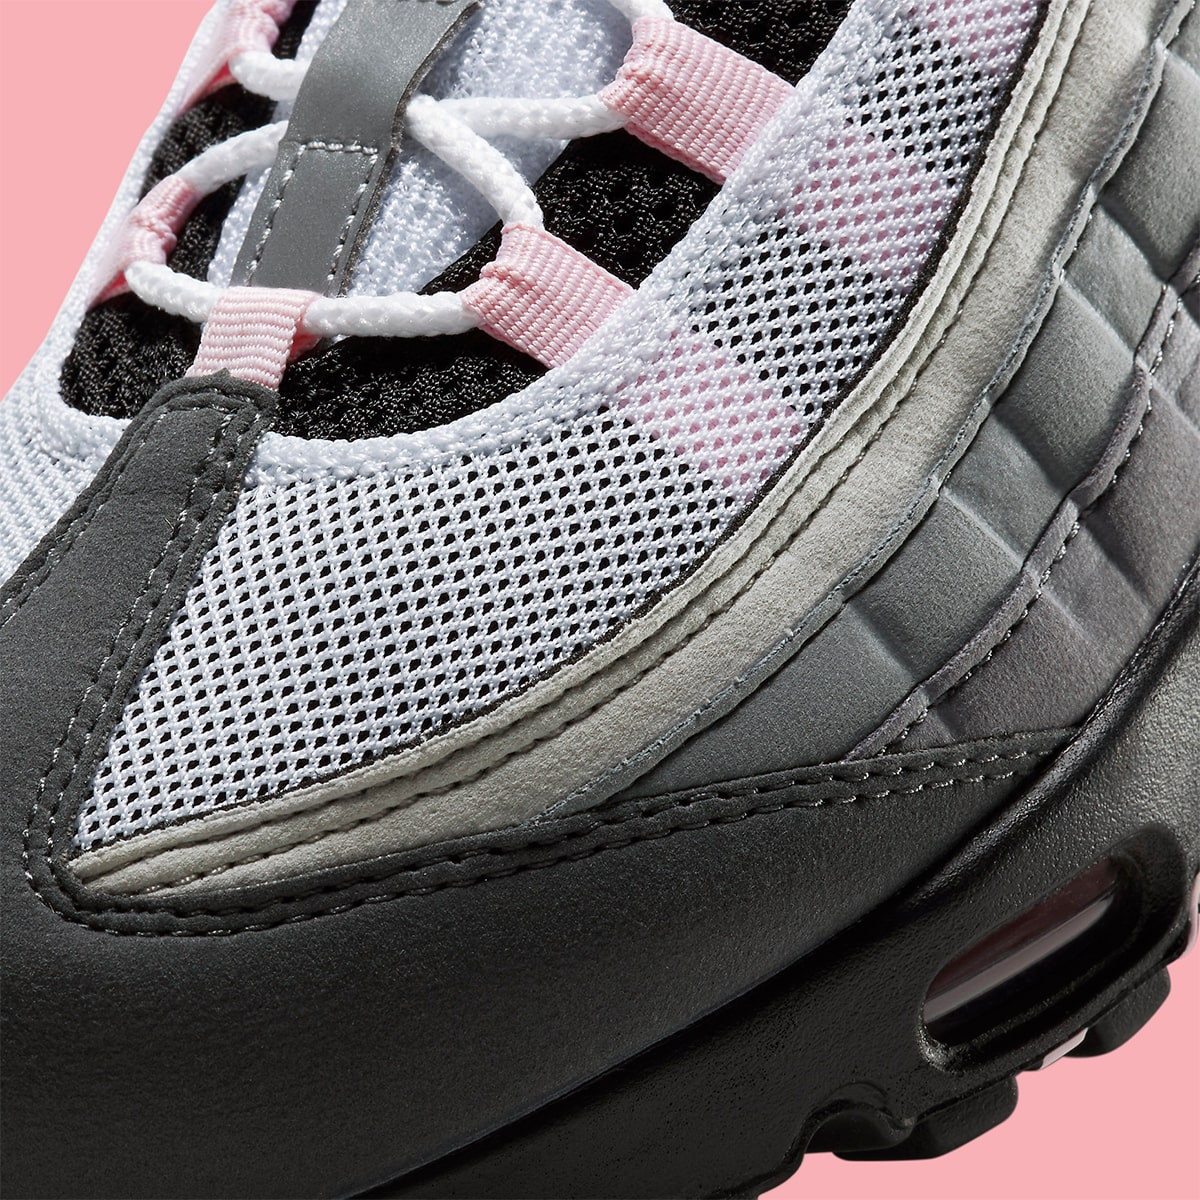 Available Now Og Styled Air Max 95 Presents Pastel Pink Pops